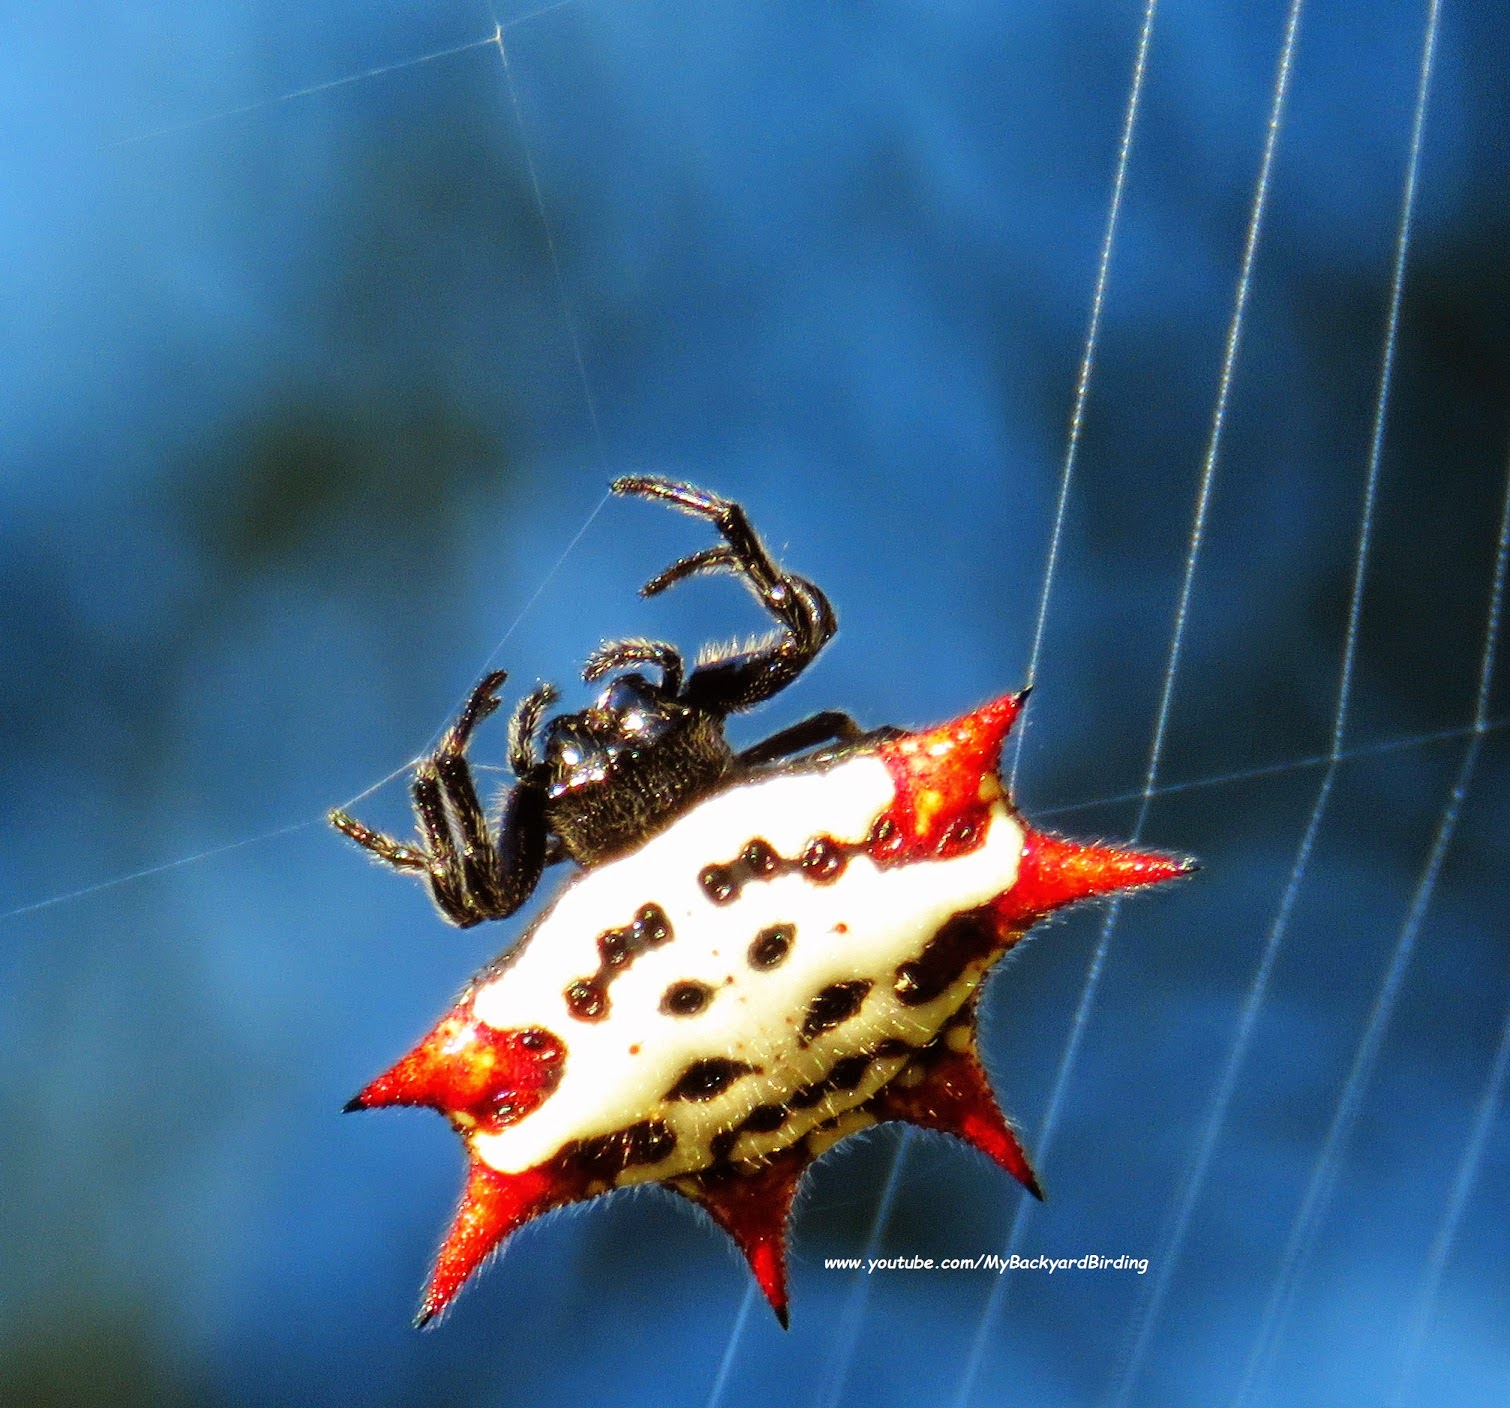 Spiny Backed Orb Weaver Spider Spinning a Web